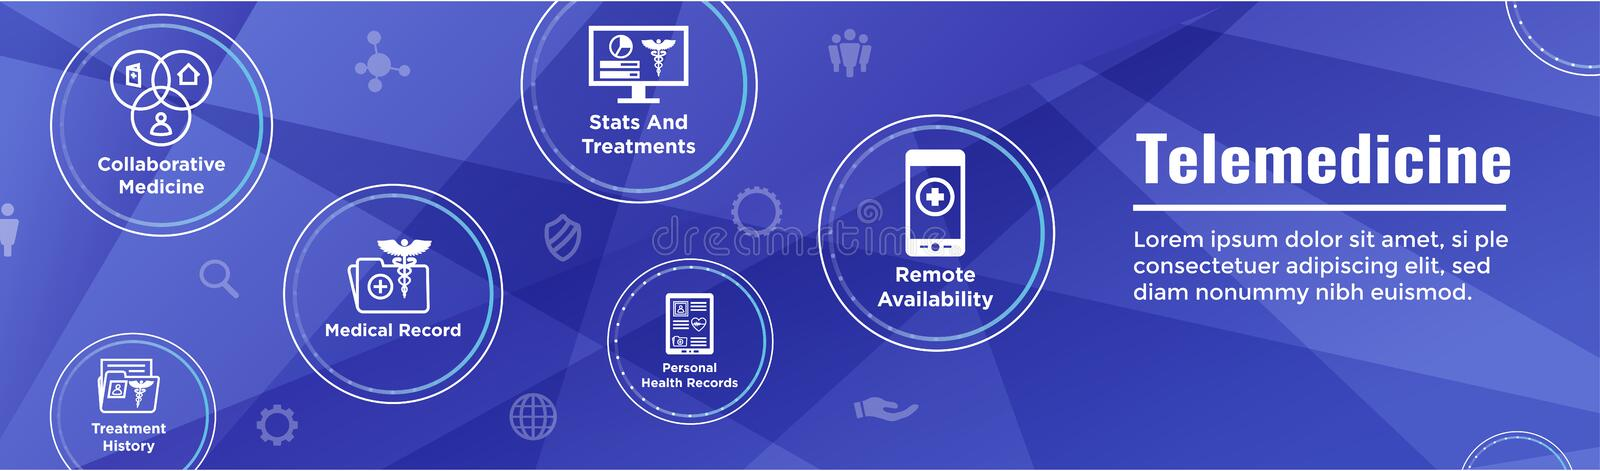 Telemedicine header banner for web - icon set with telehealth, e. Hr, phr, and emr royalty free illustration